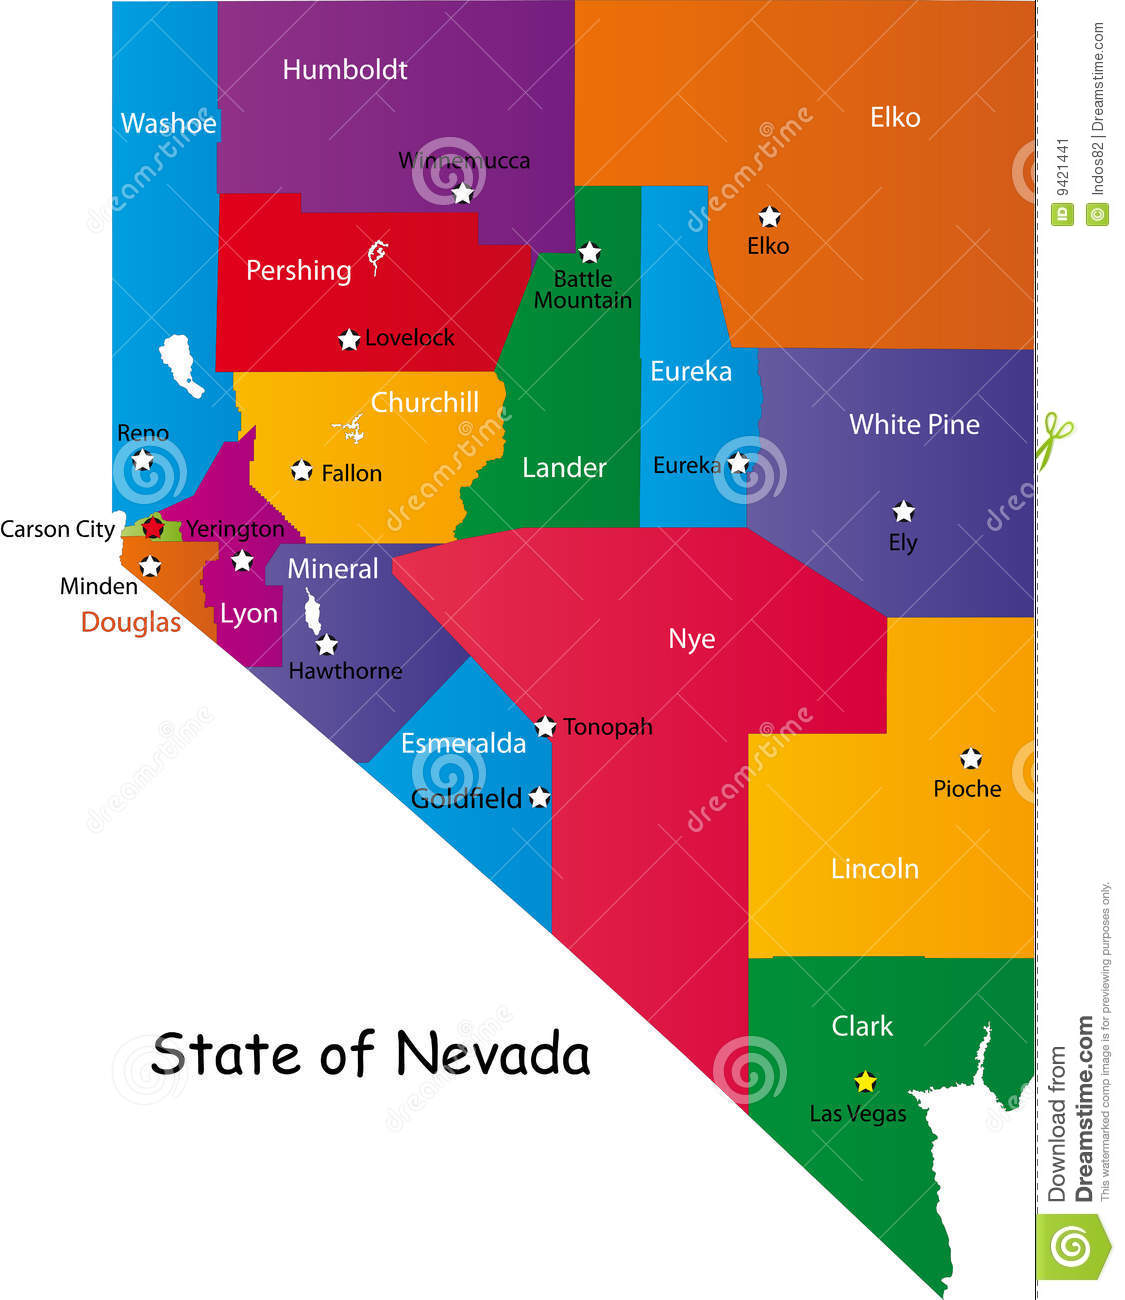 State Of Nevada Stock Image Image - Map of nevada county